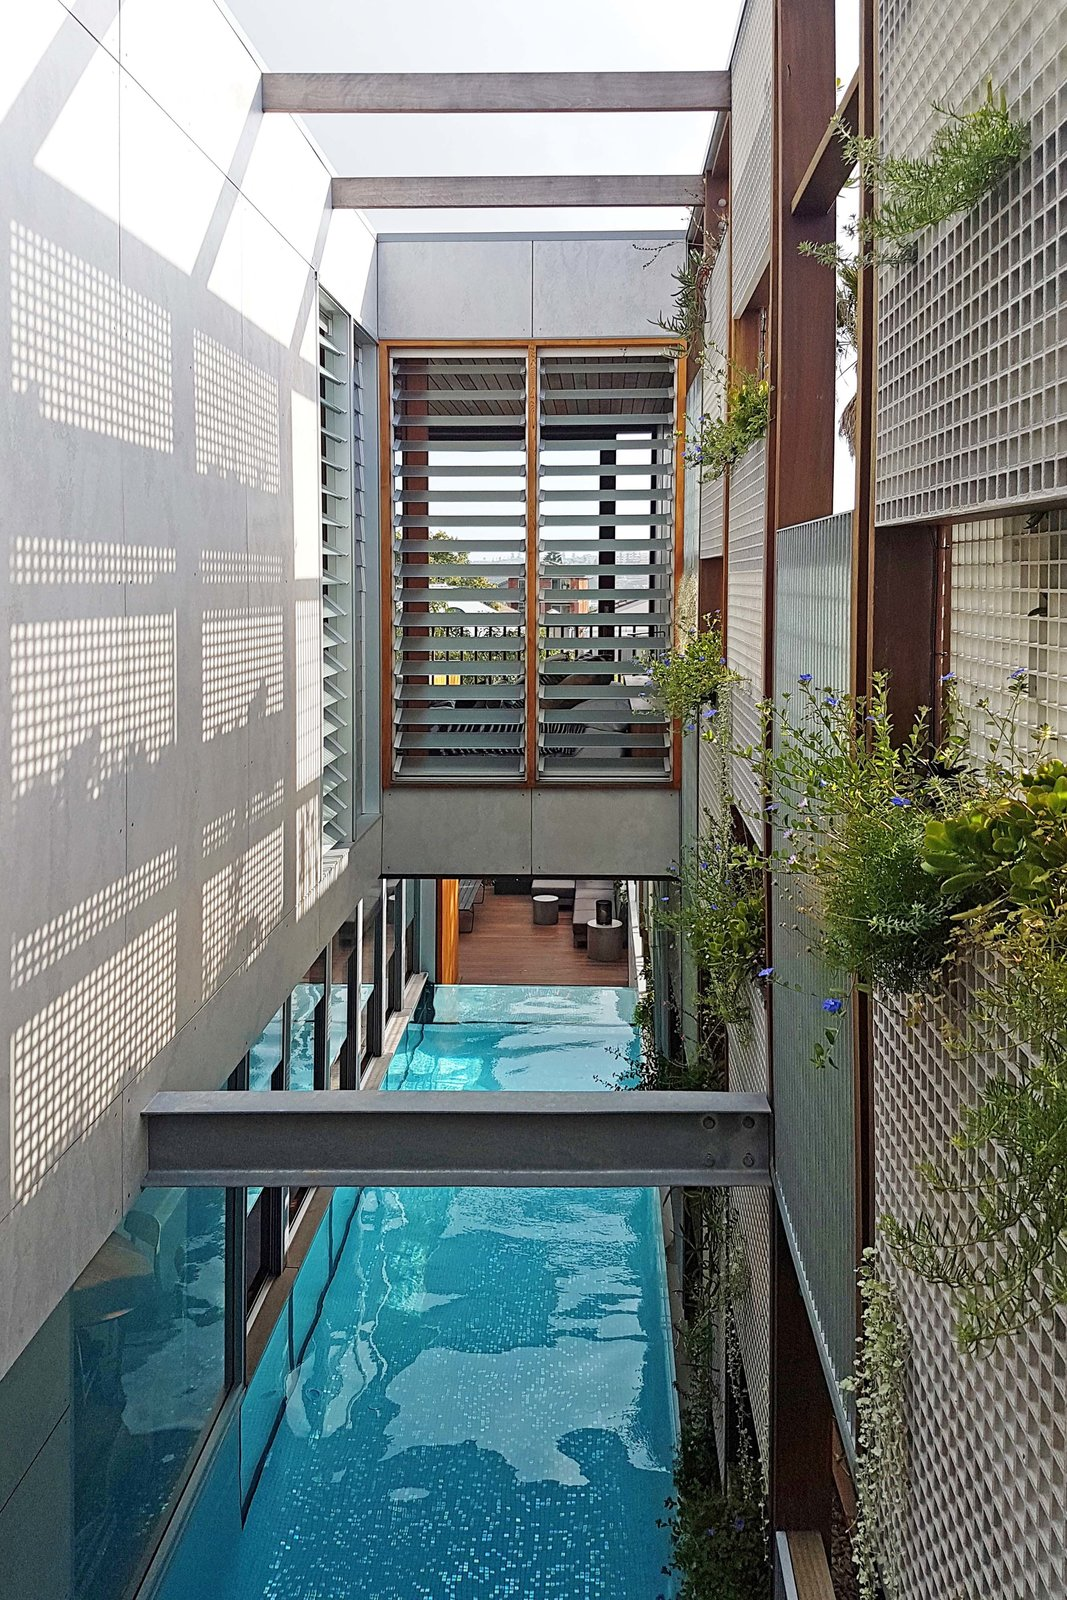 Outdoor And Swimming Pools, Tubs, Shower Photo 14 Of 19 In Living Screens  Conceal